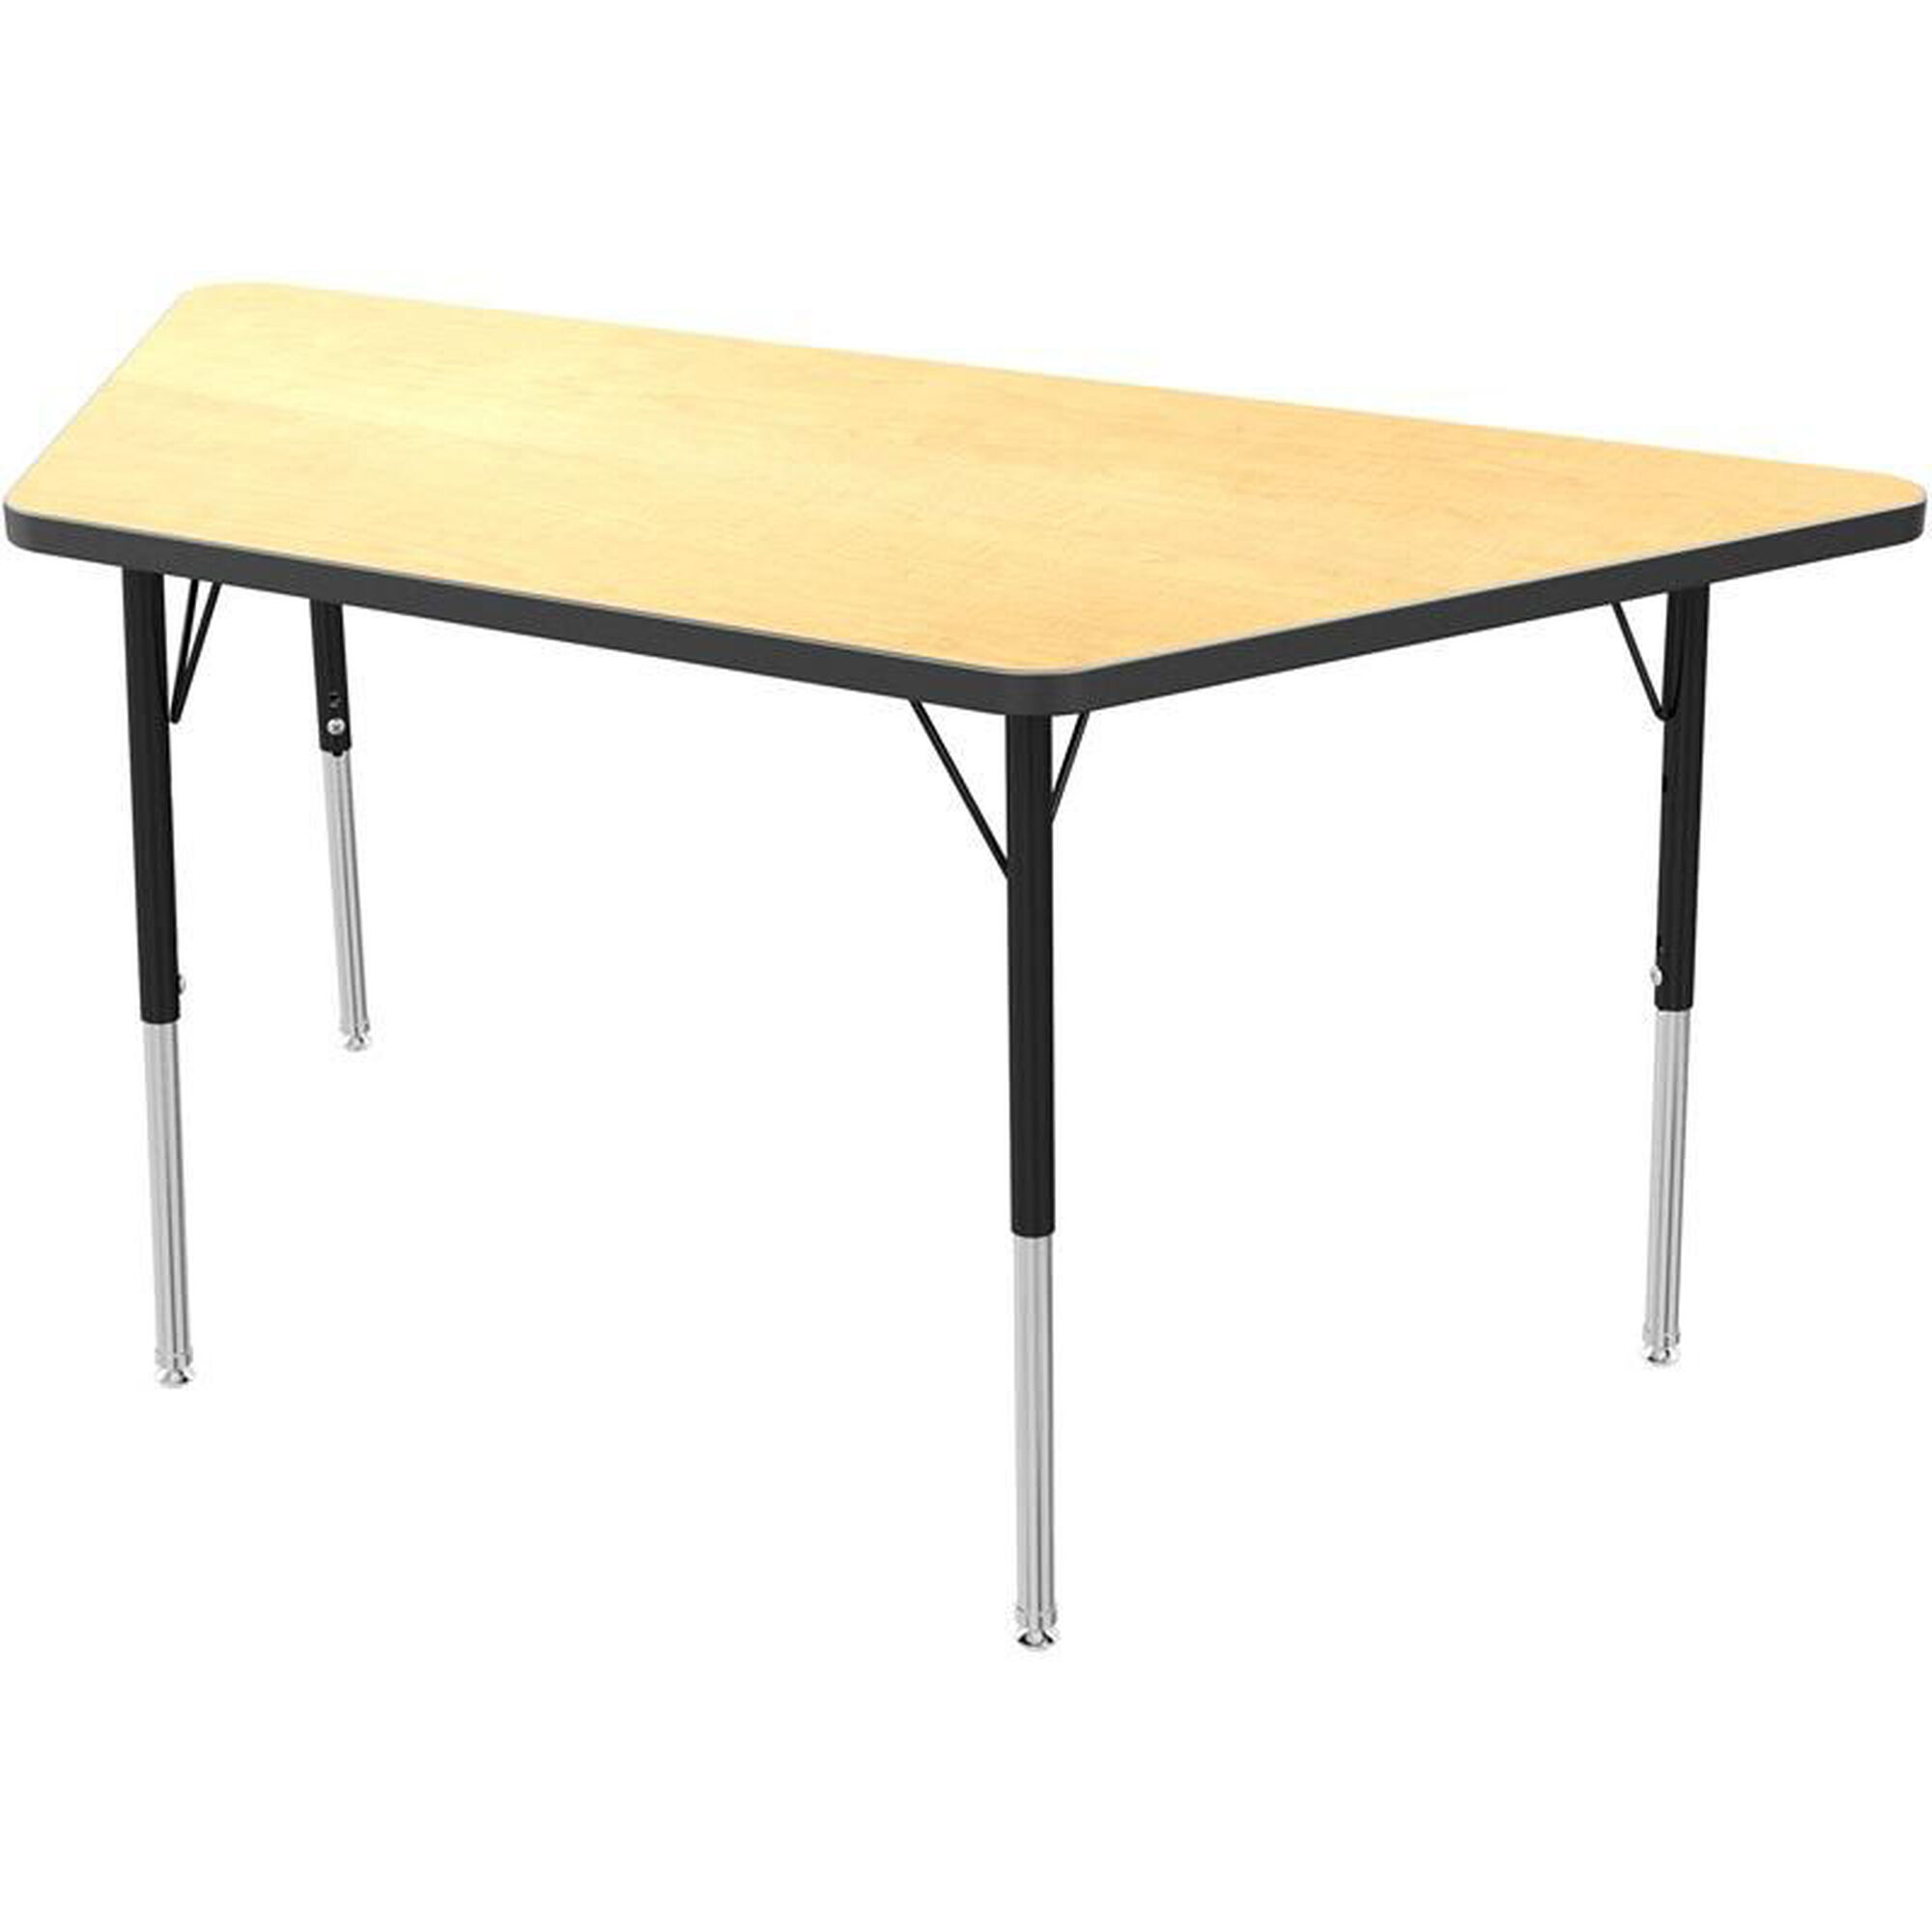 Mg trapezoid kids activity table mg2276 50 ablk for Trapazoid table